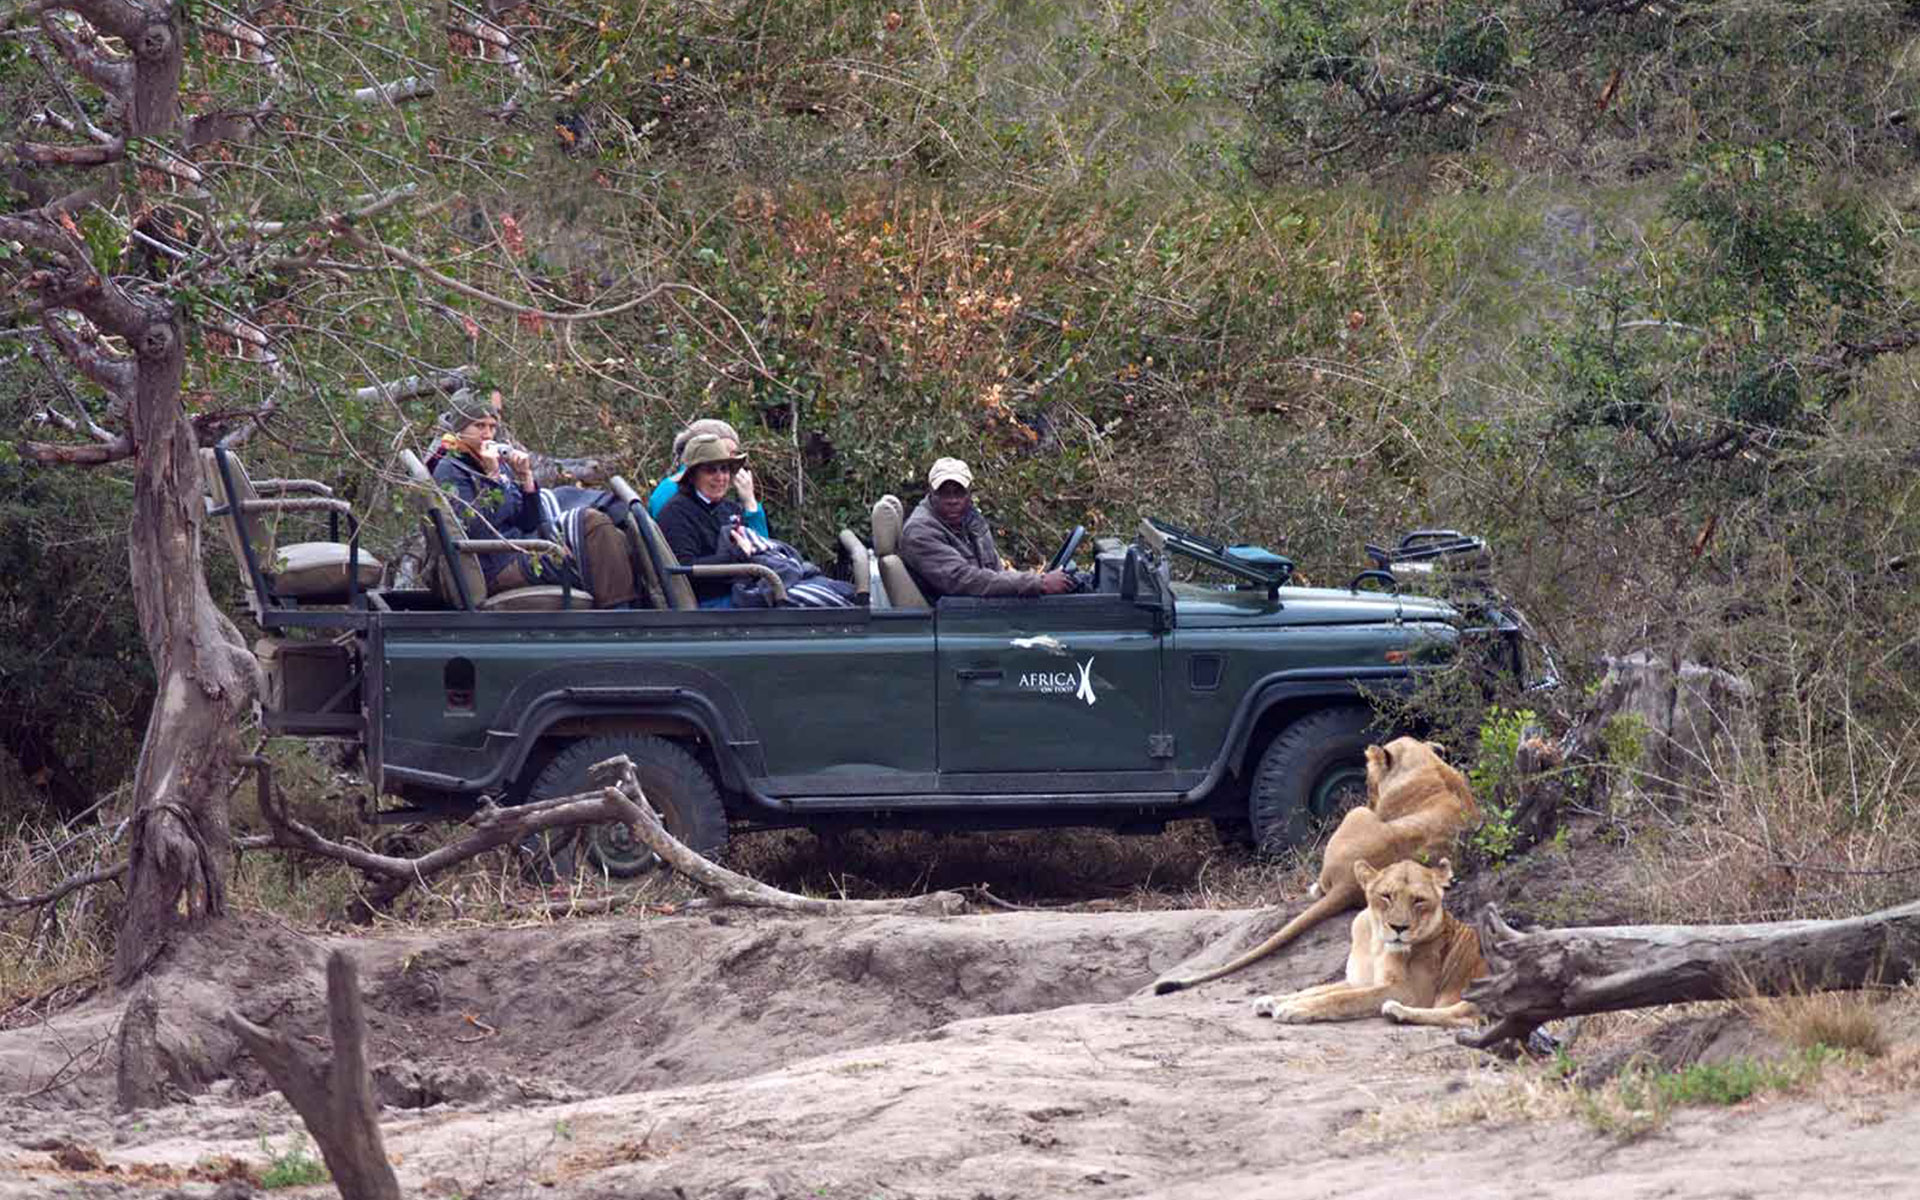 Savanna Safaris Lions by Vehicle